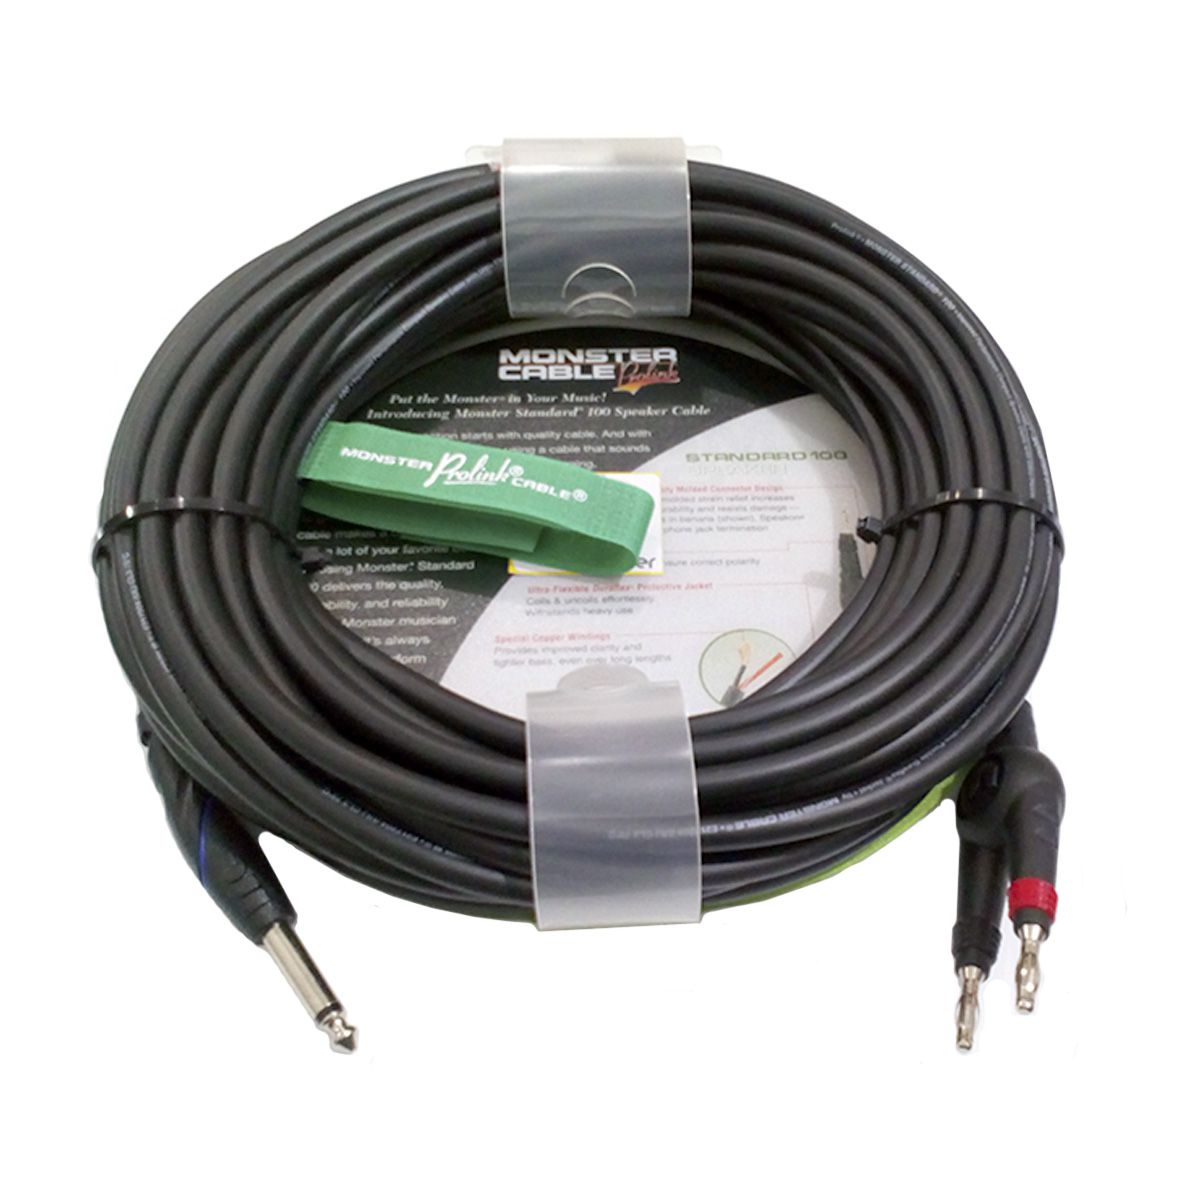 Cabo - Caixa P10 / MDP 15m Monster Cable S100-S-50MT